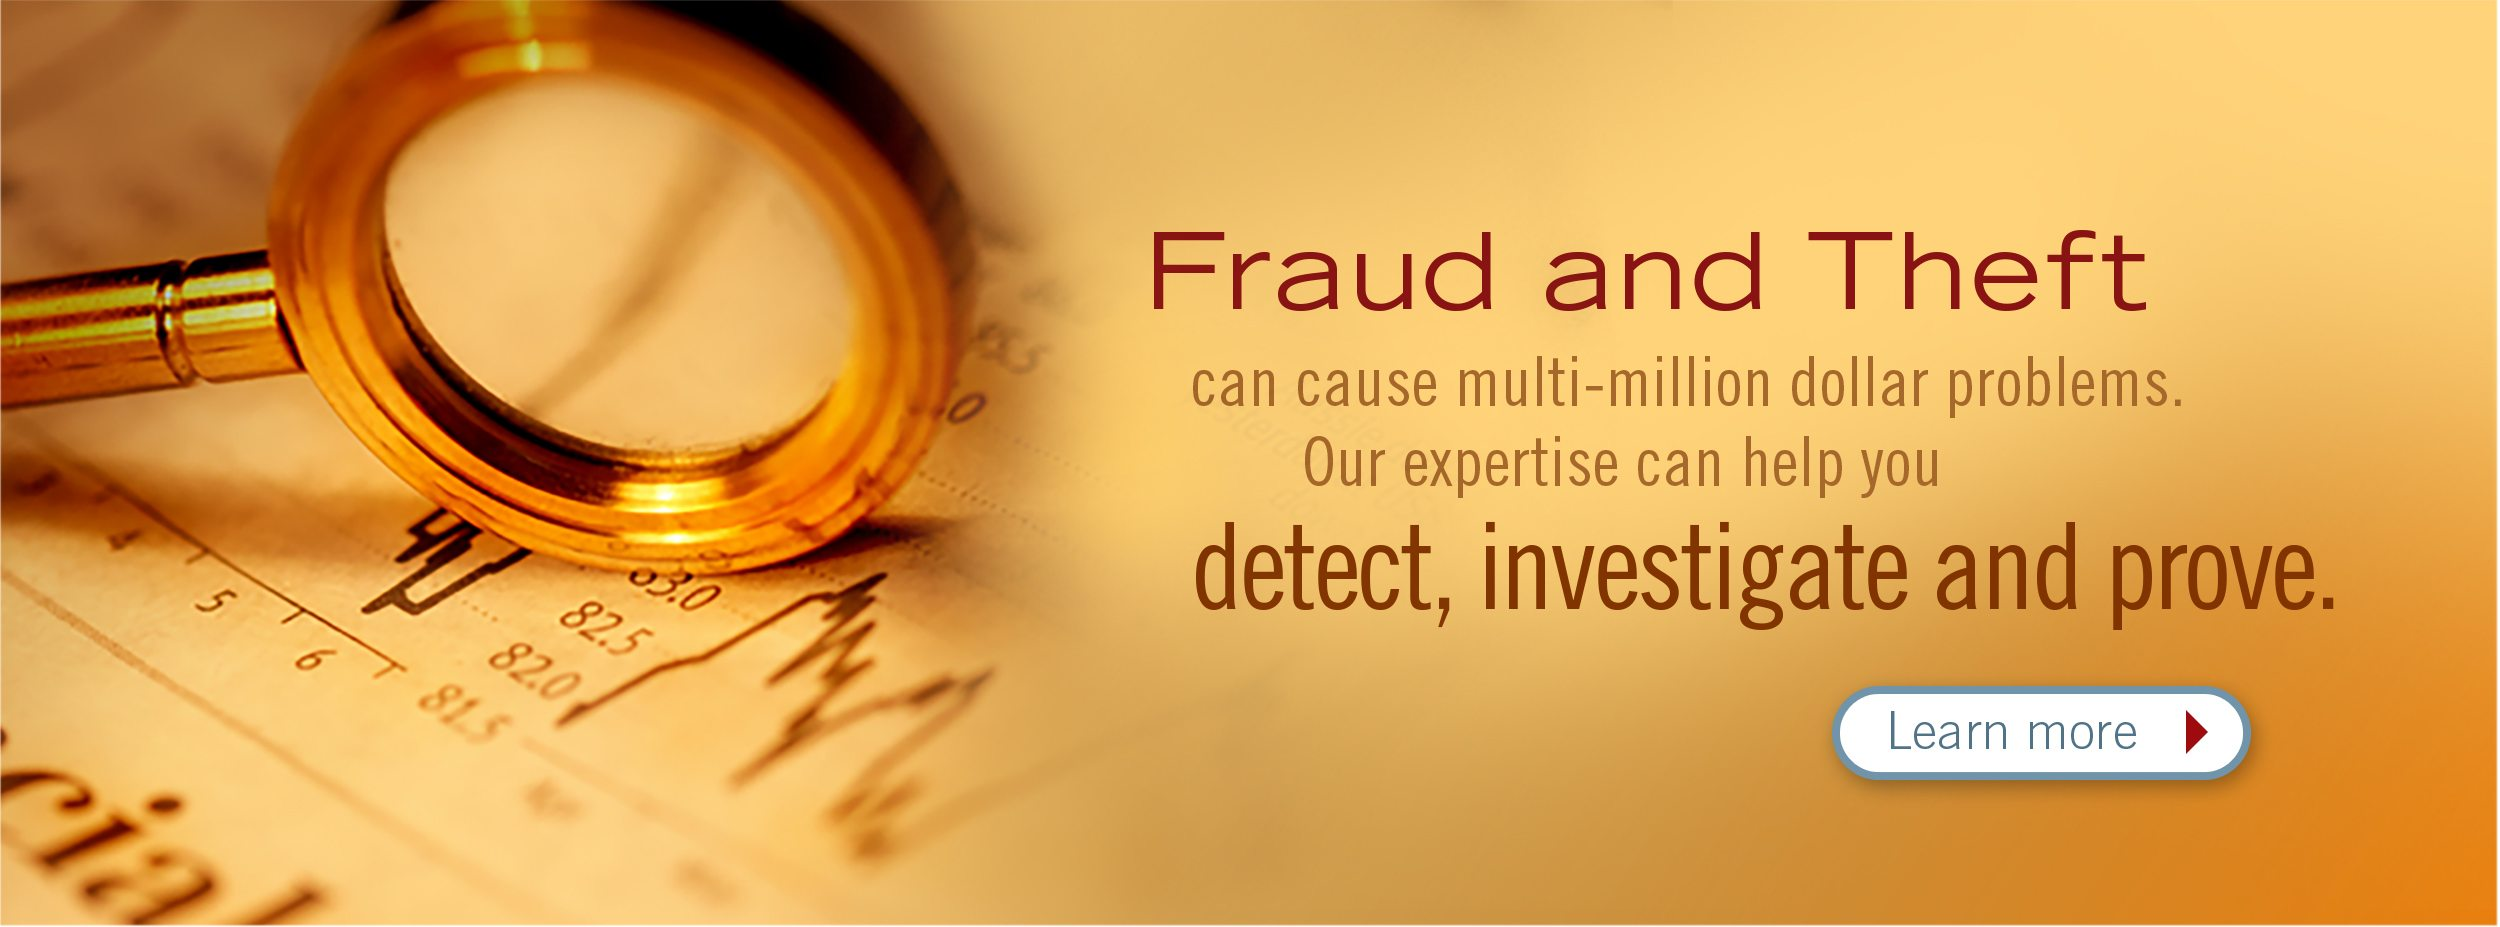 fraud and theft can cause multi million dollar problems